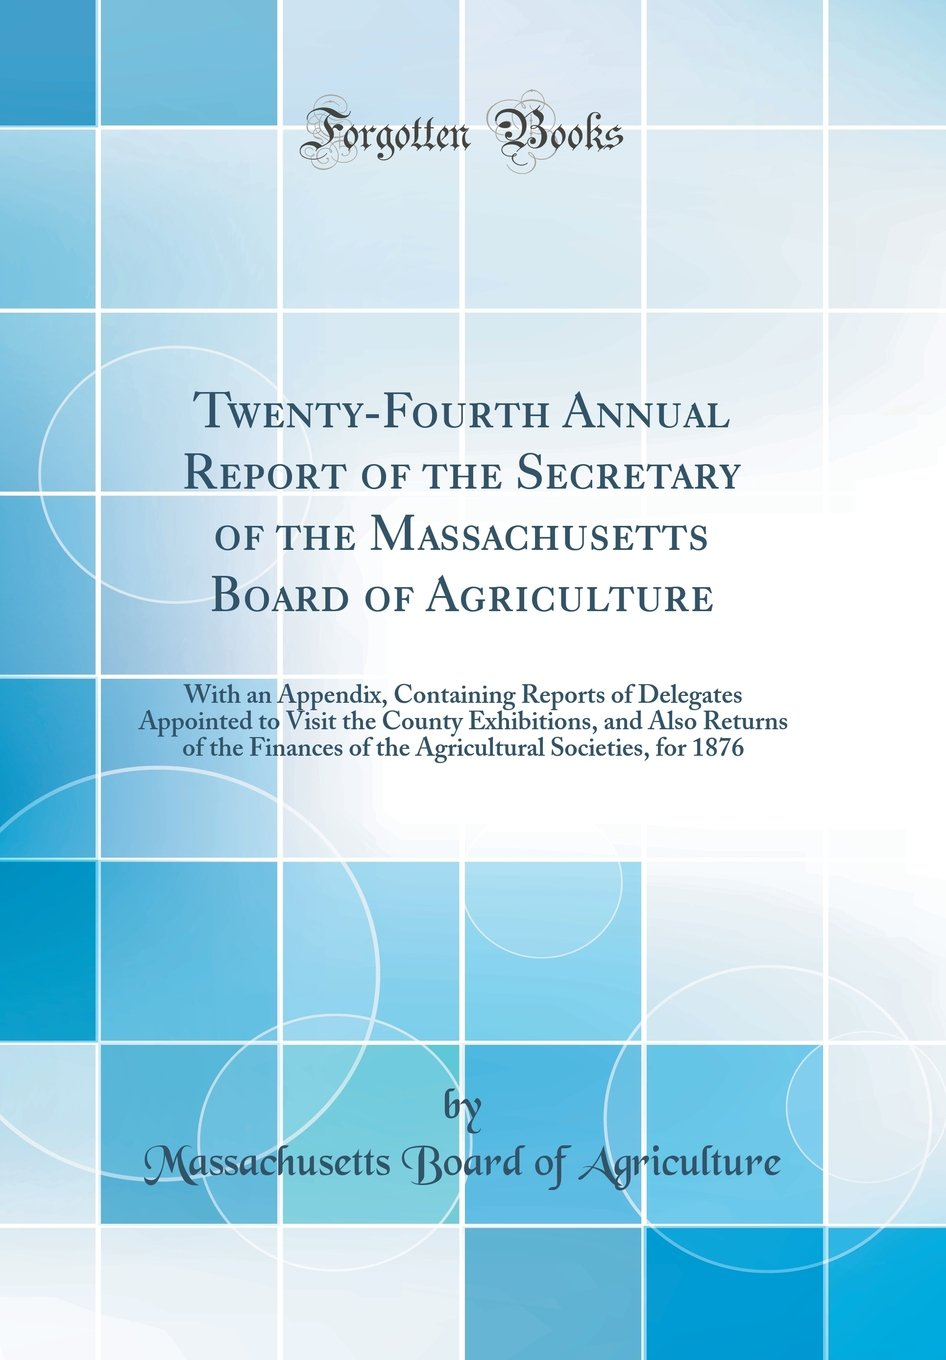 Read Online Twenty-Fourth Annual Report of the Secretary of the Massachusetts Board of Agriculture: With an Appendix, Containing Reports of Delegates Appointed to ... of the Agricultural Societies, for 1876 ebook